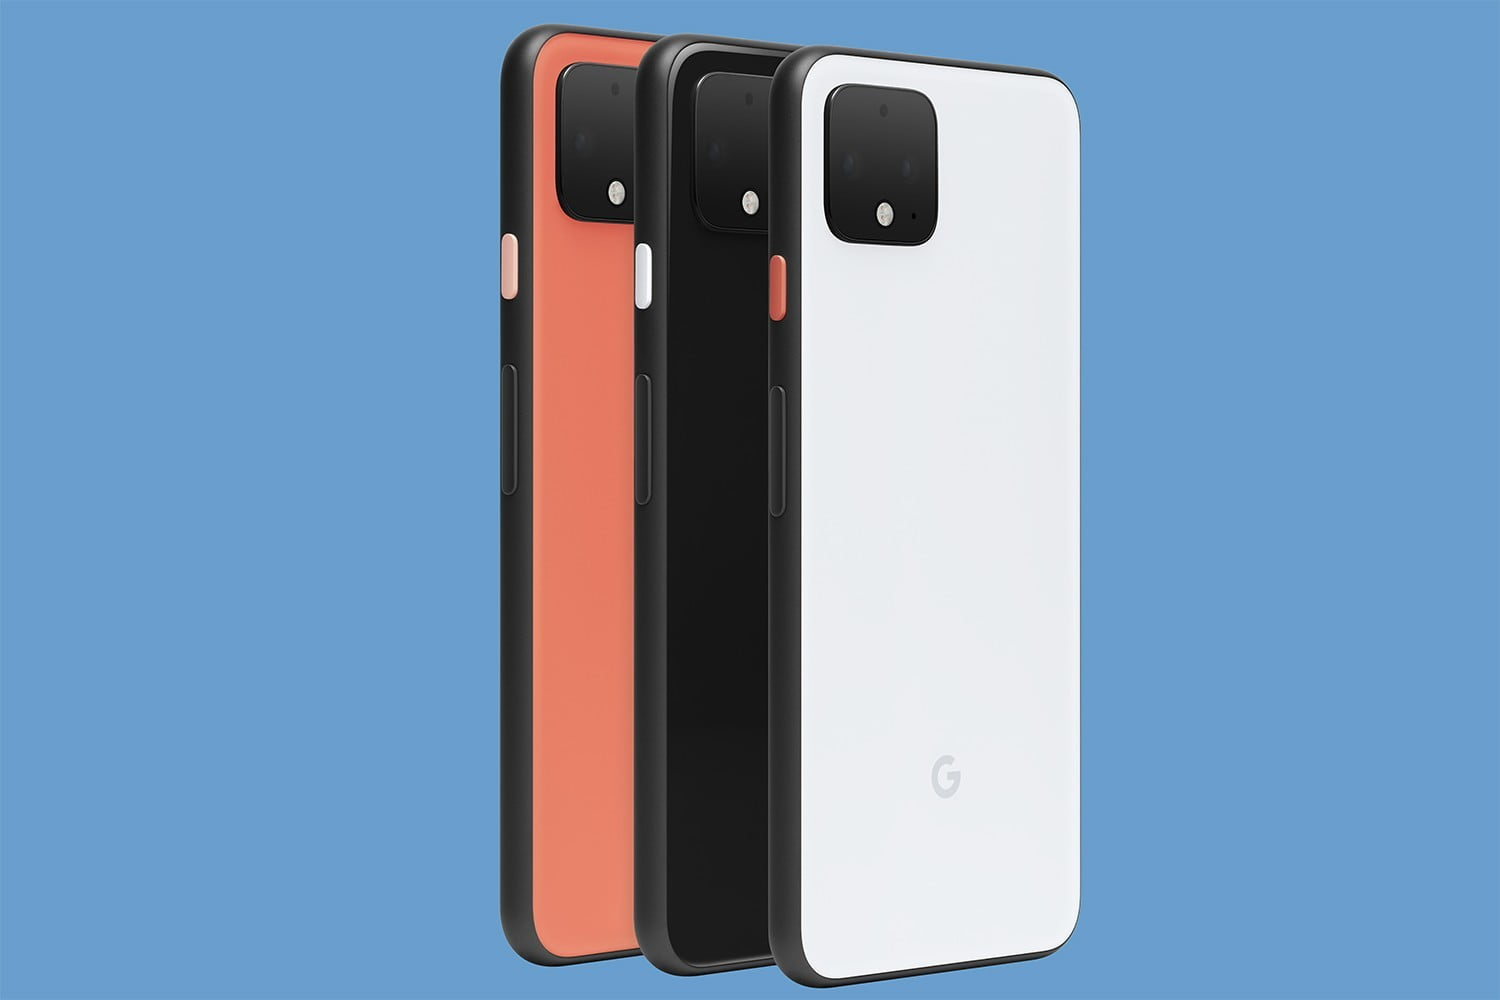 Google's Pixel 4 looks different. Here's what the designers changed and why